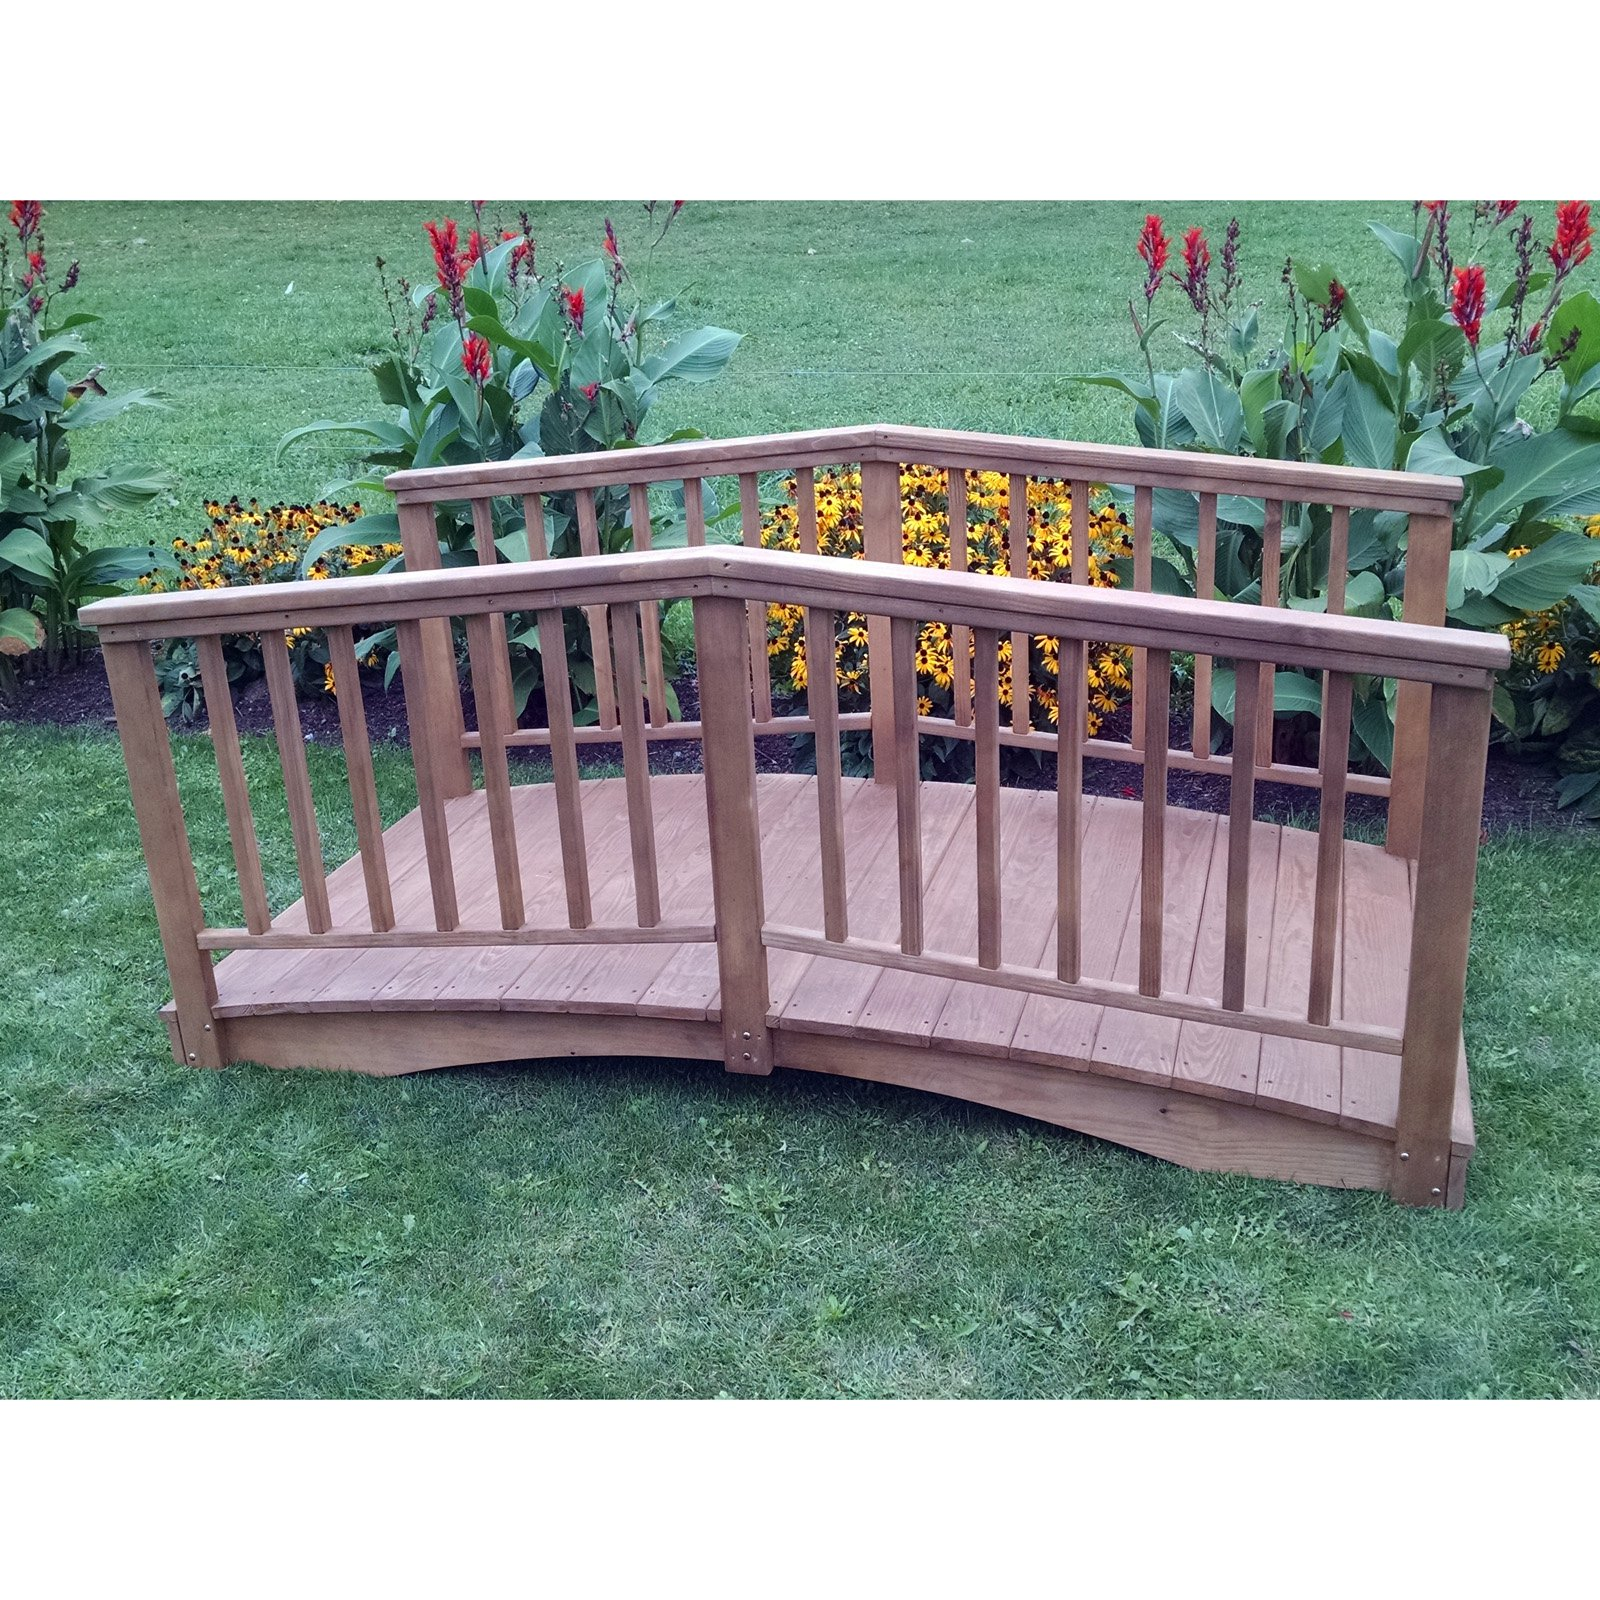 A and L Furniture Cedar Baluster Bridge